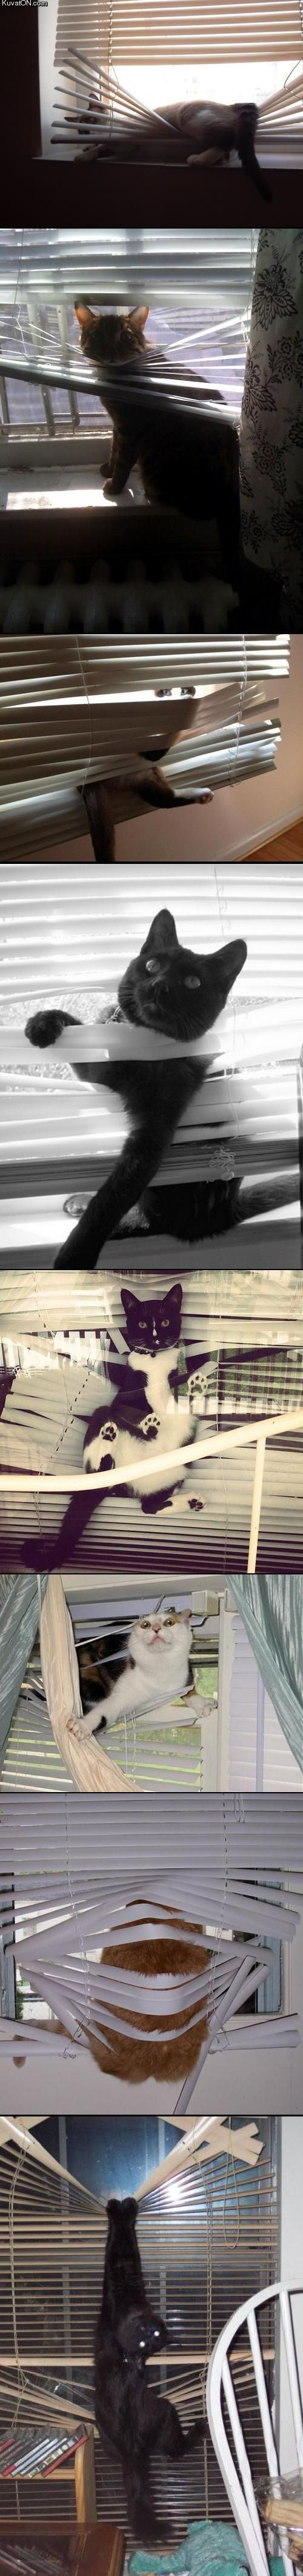 Cats in blinds that looks like something my cat would do lol.